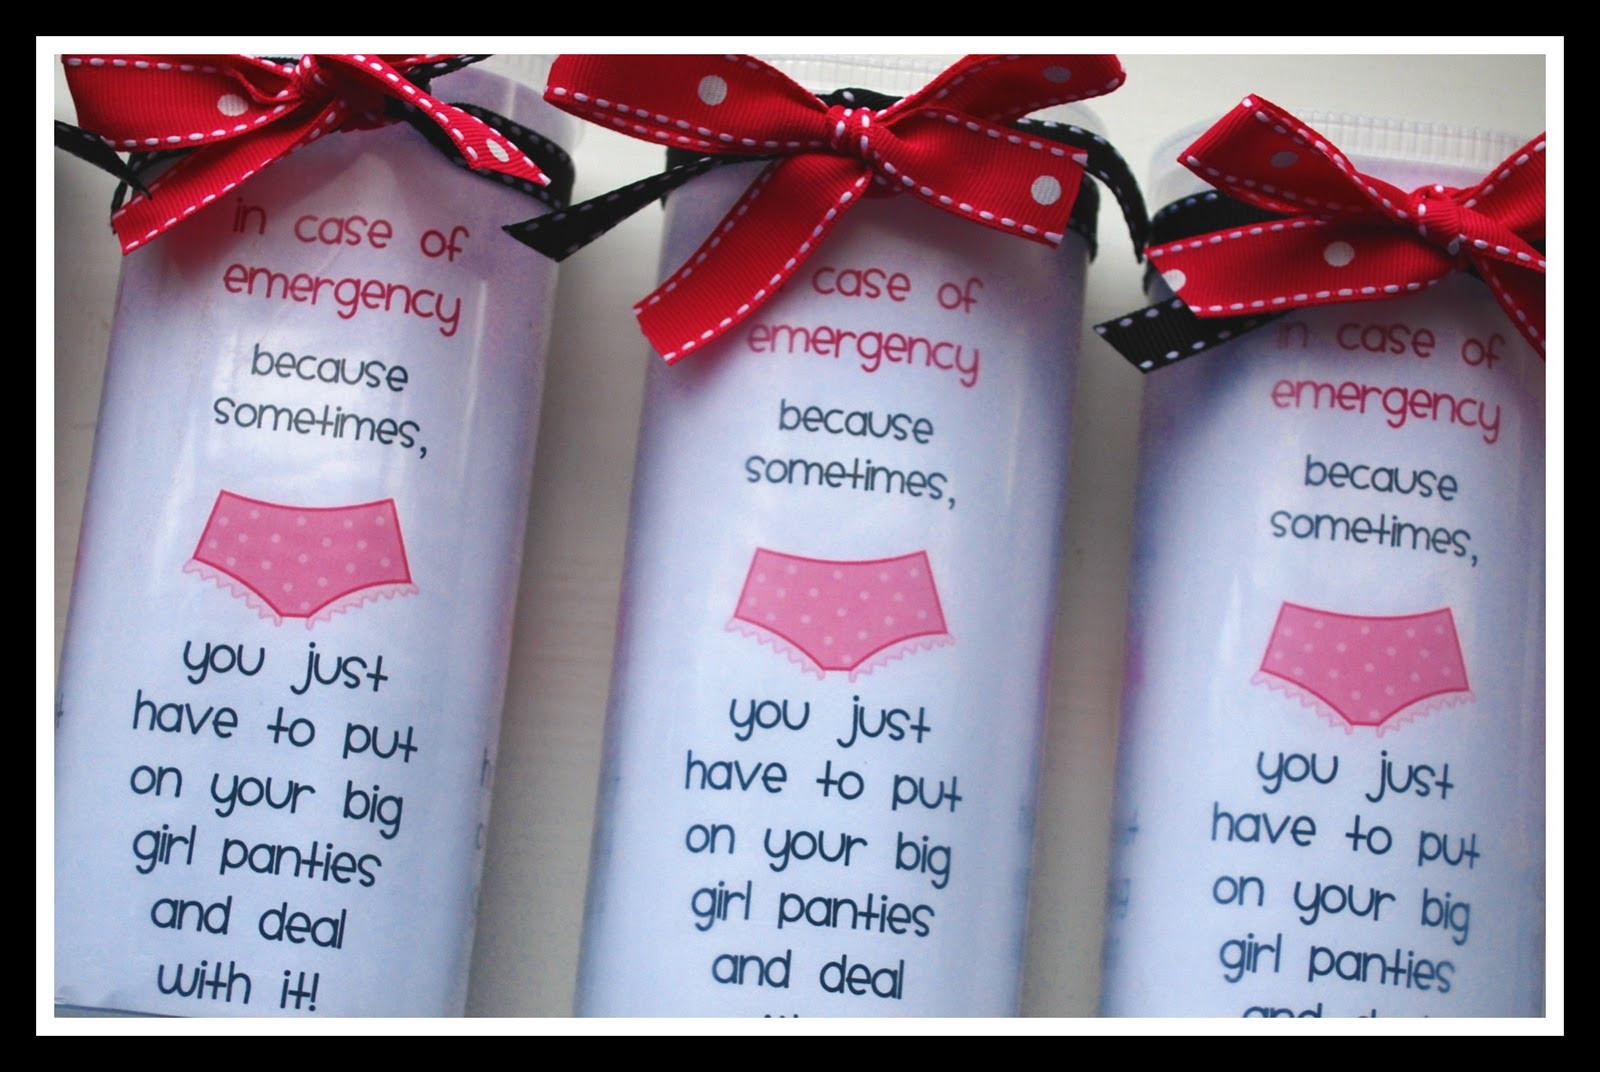 Best ideas about Homemade Funny 50th Birthday Gift Ideas . Save or Pin Sweet Blessings Big Girl Panties Now.